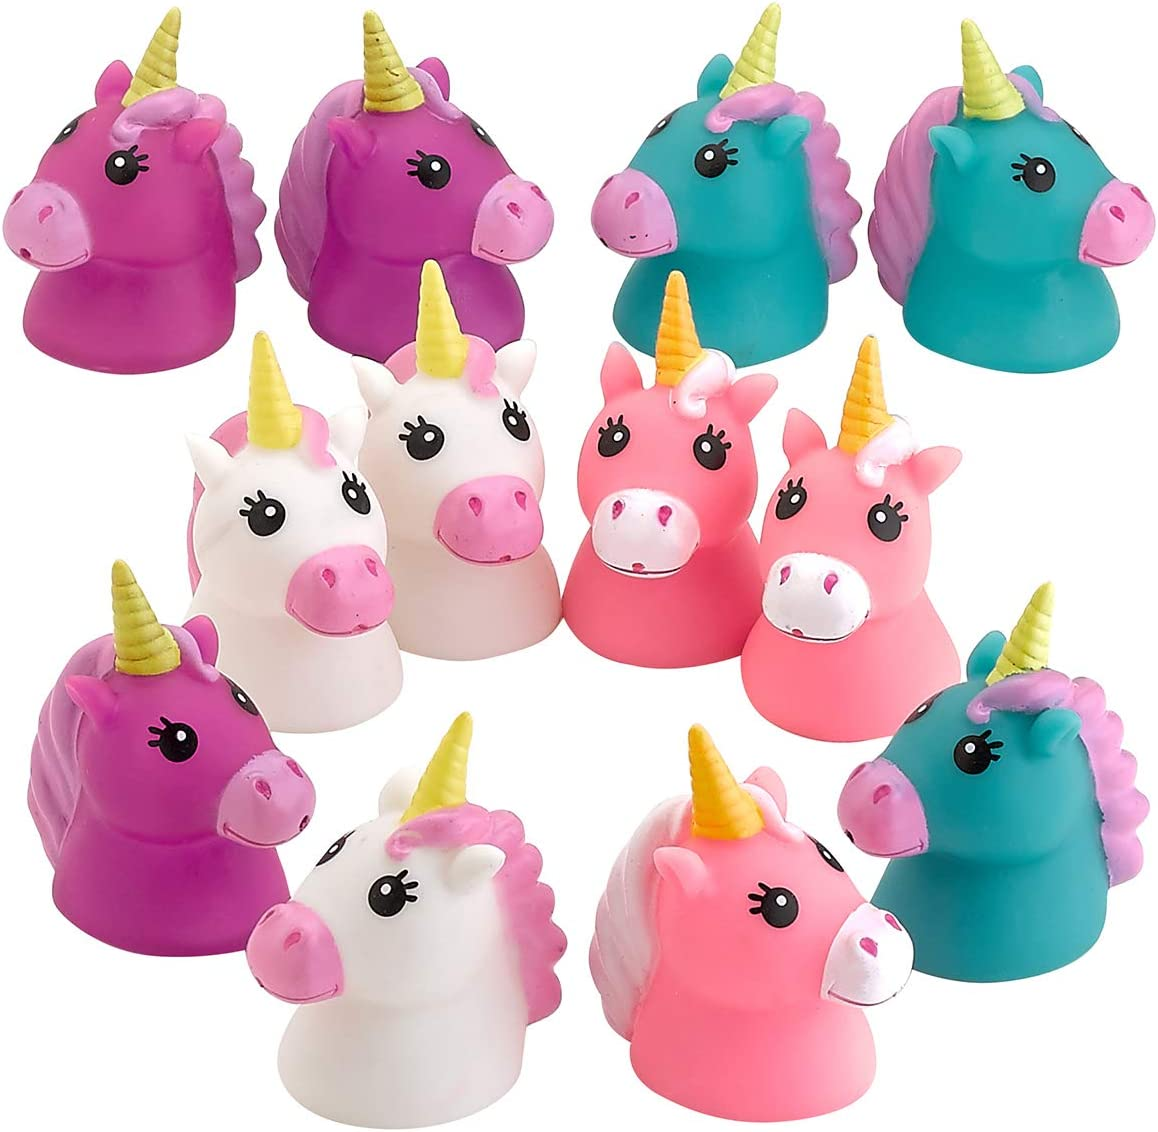 2 x UNICORN BATH SQUIRTER Squirt Pony Toy Kids Baby Shower Water Play Favor Gift